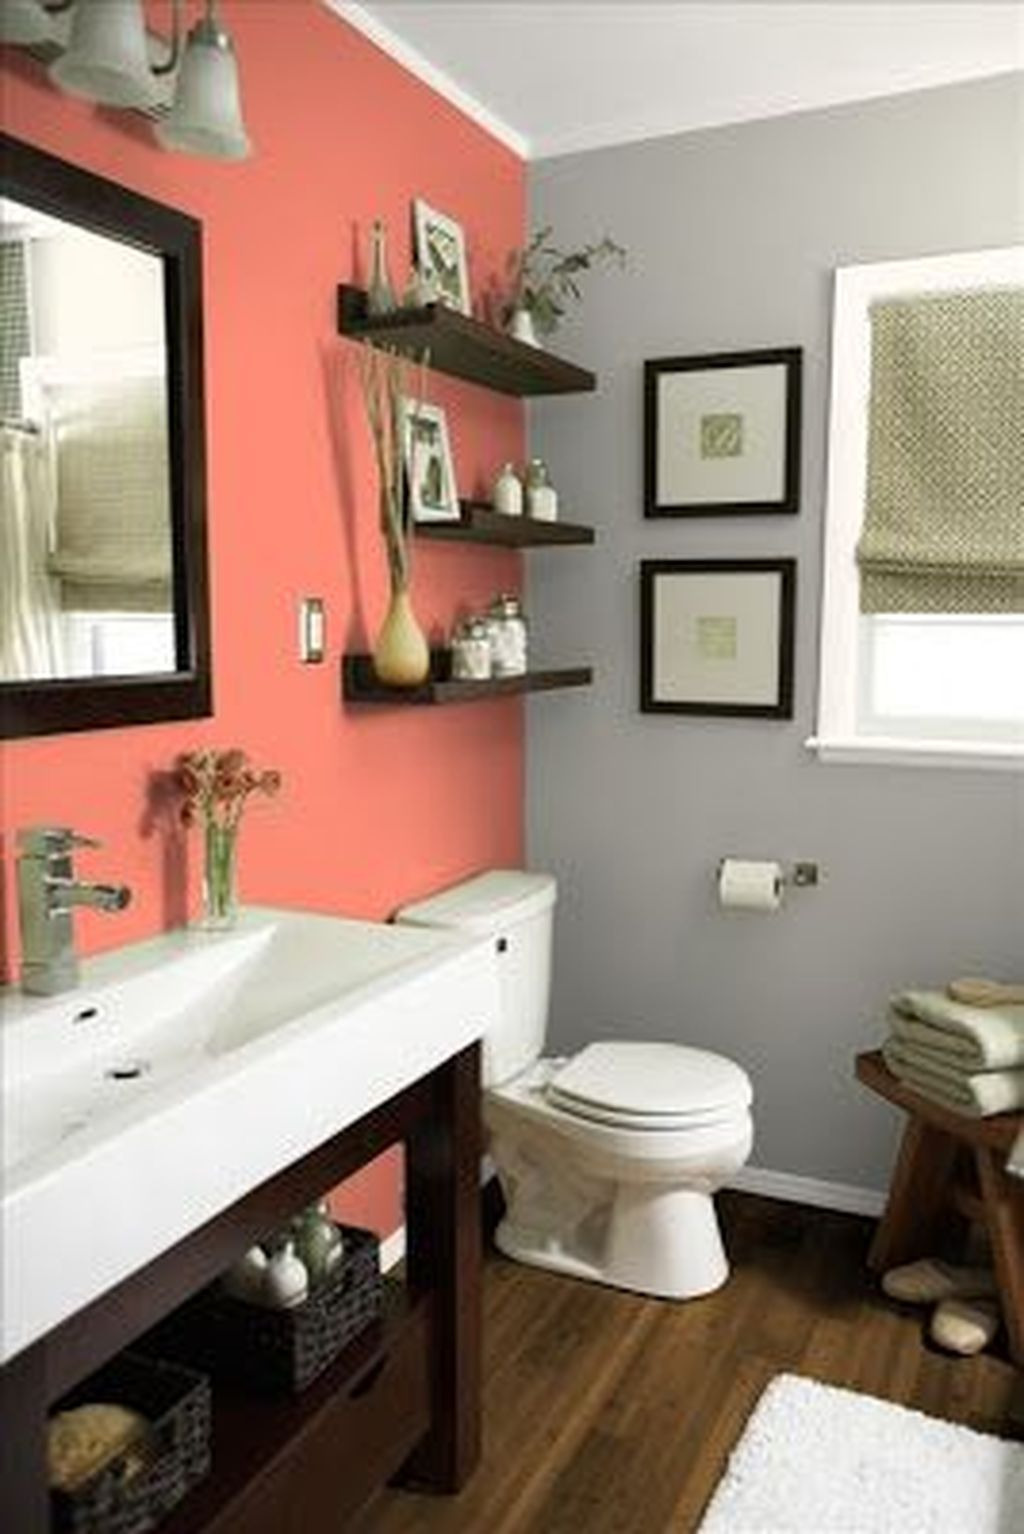 Coral Color Bathroom Decor New 10 Coral Color Bathroom Decor some Of the Cutest and